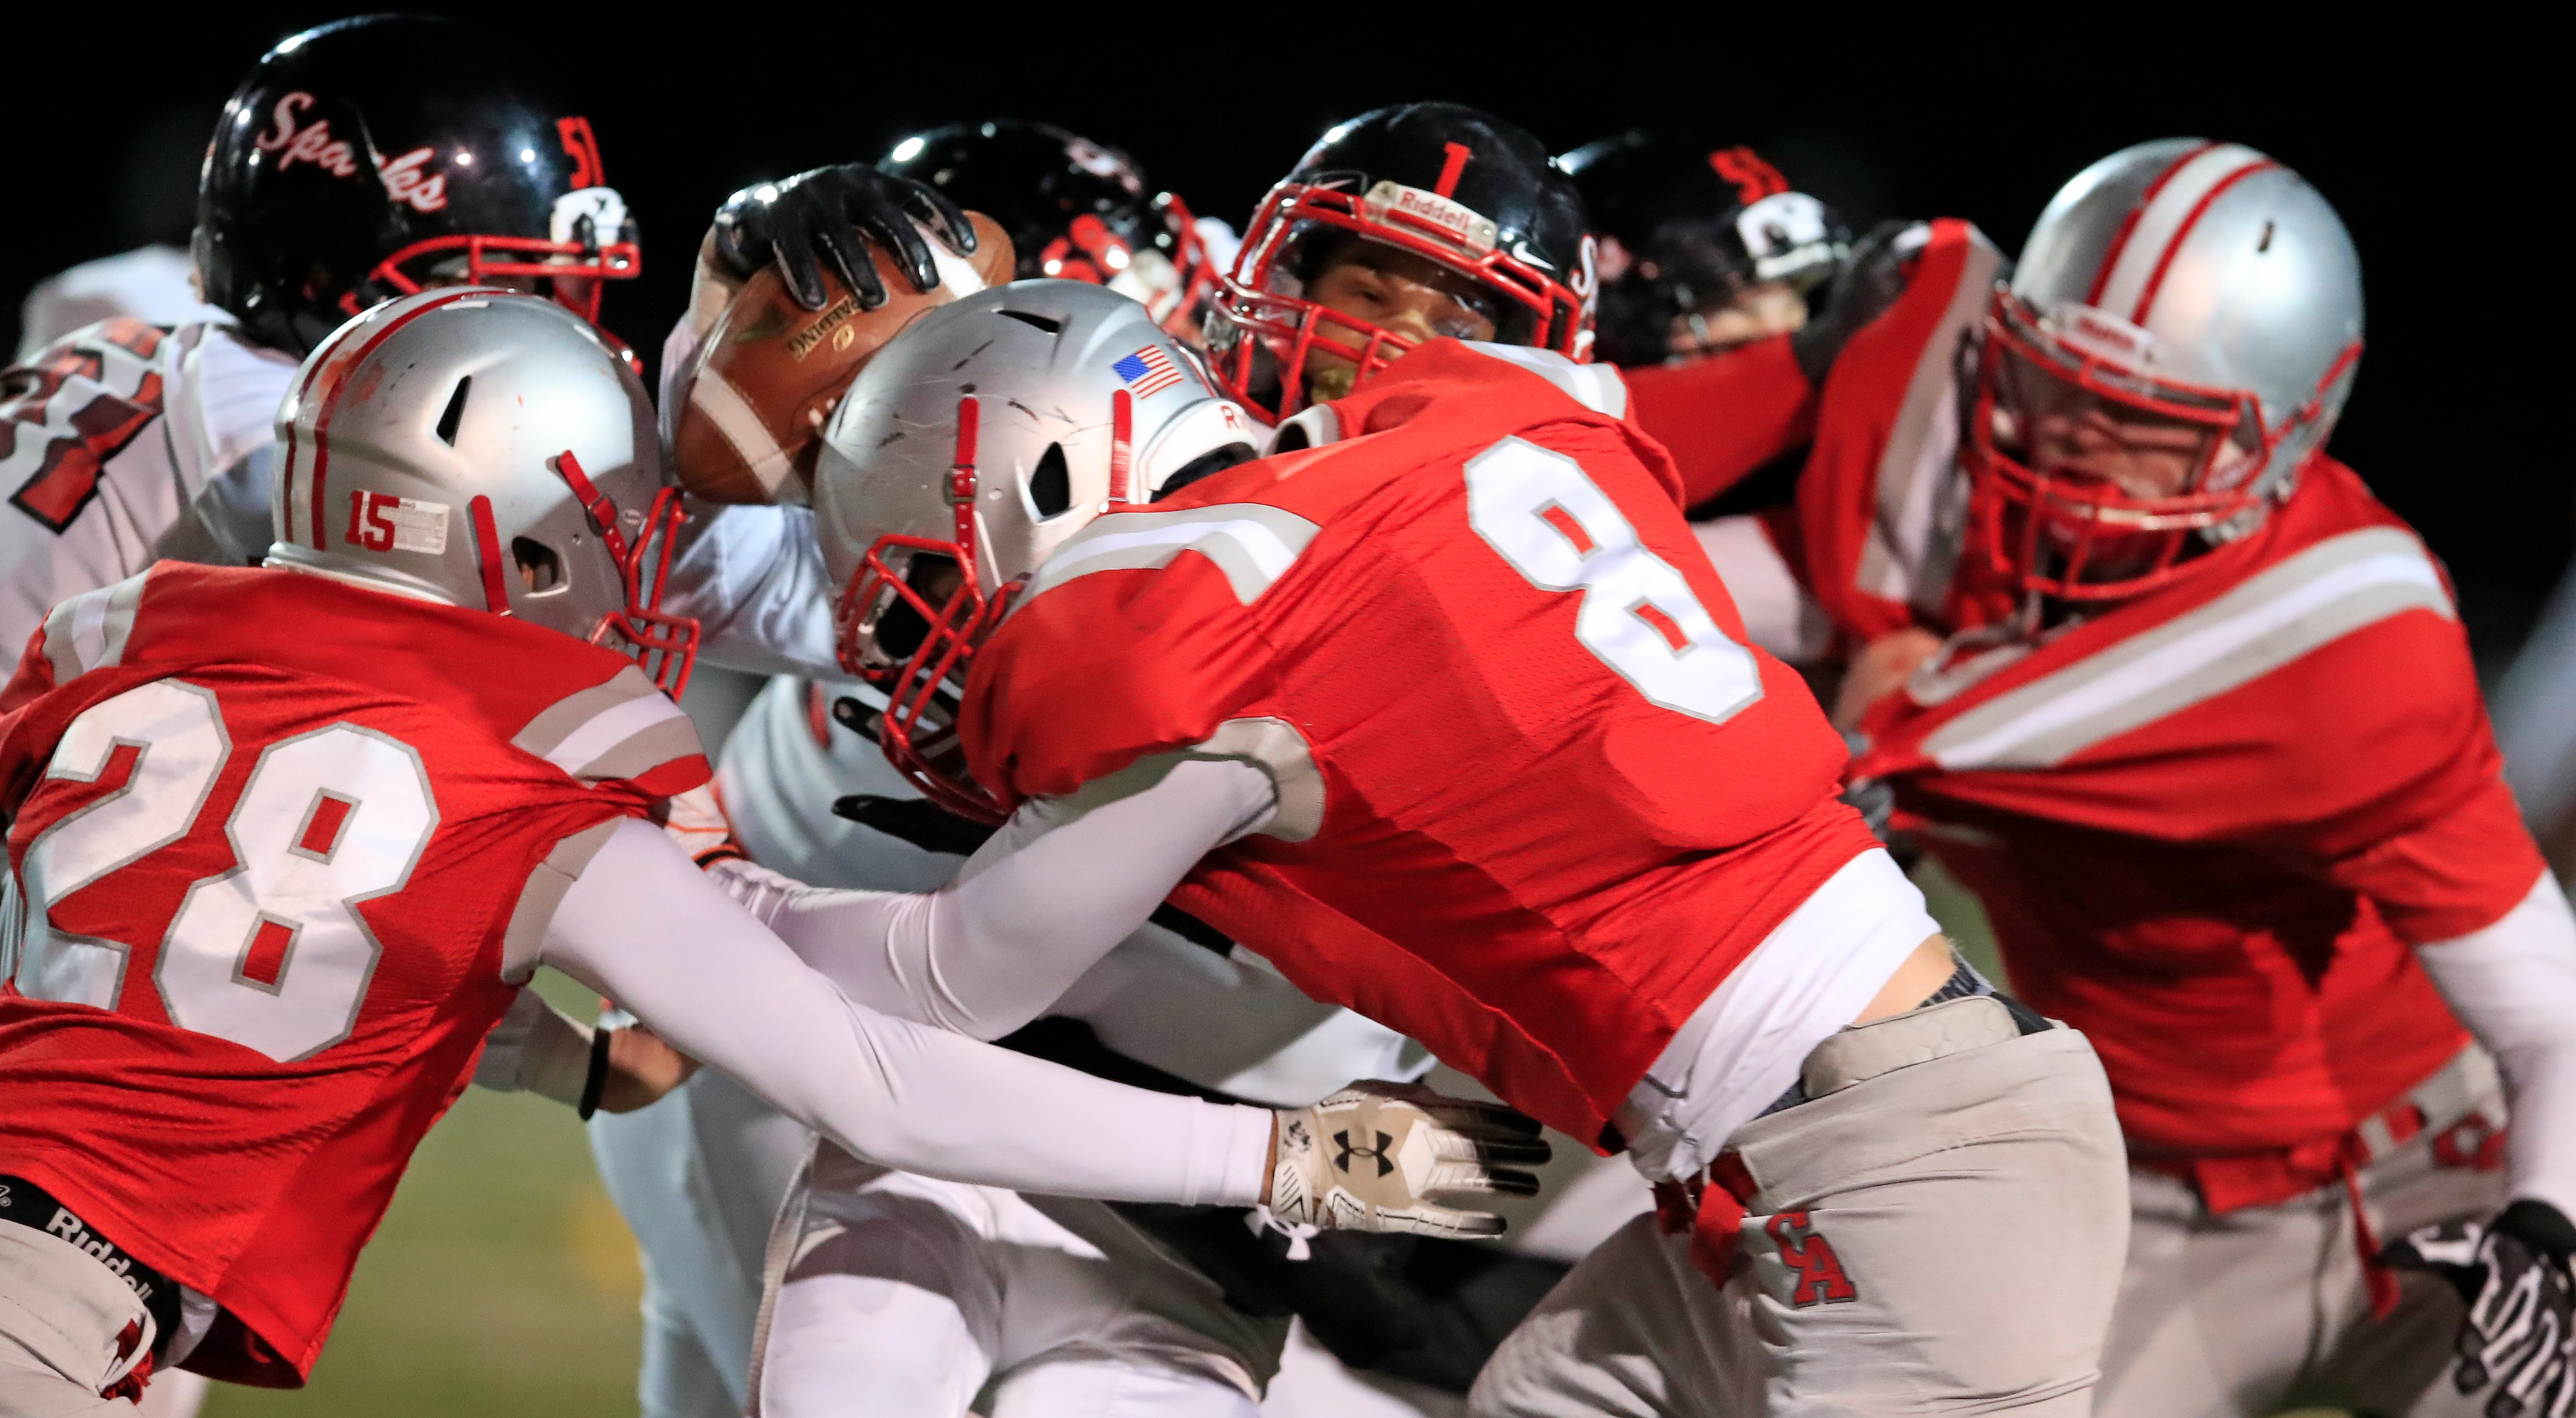 Canandaigua is headed to Class A Final Four after defeating South Park, 24-6